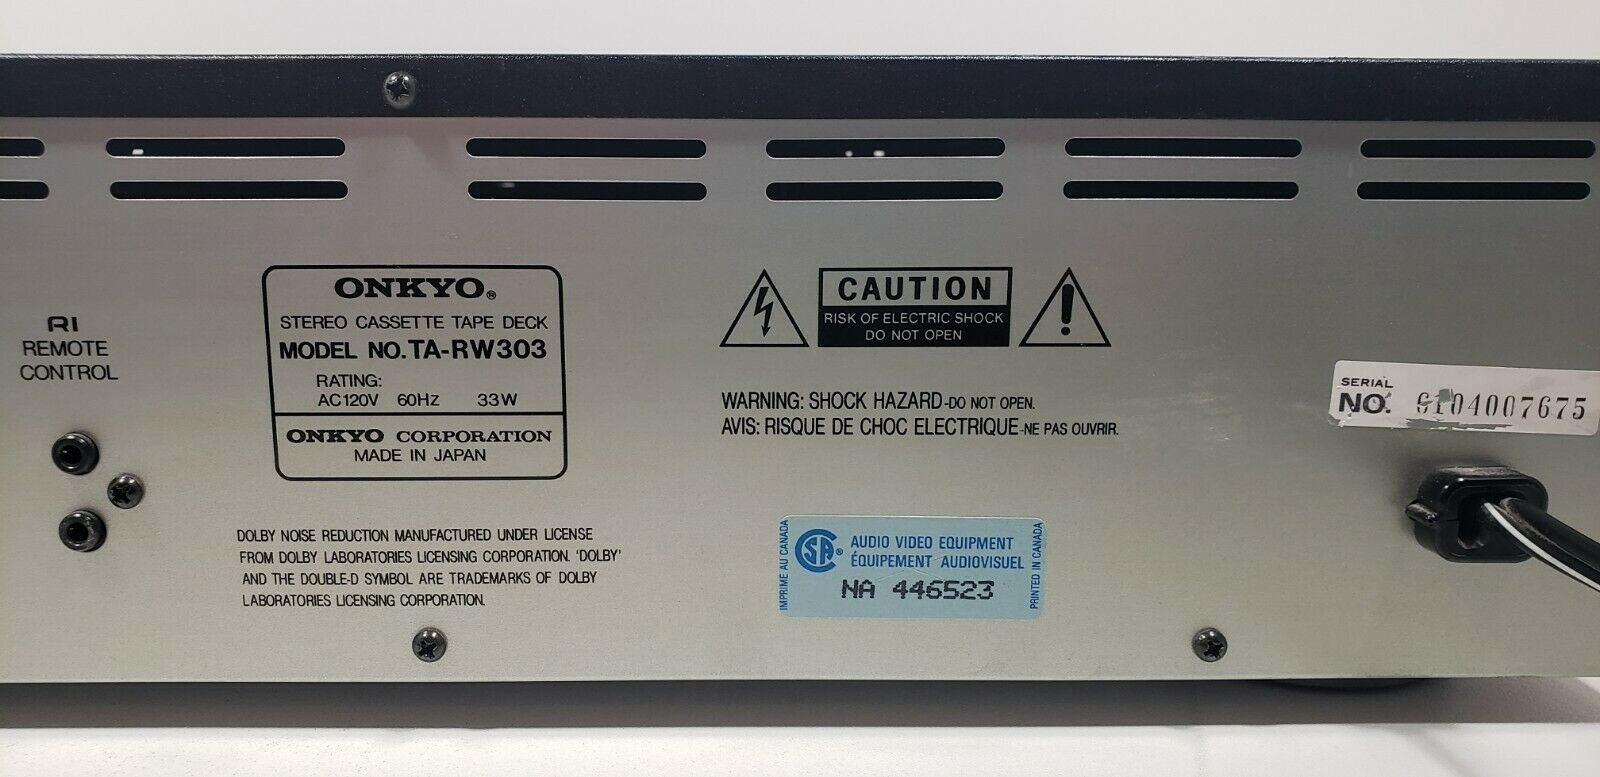 Onkyo Stereo Cassette Tape Deck TA-RW303 Tested image 10